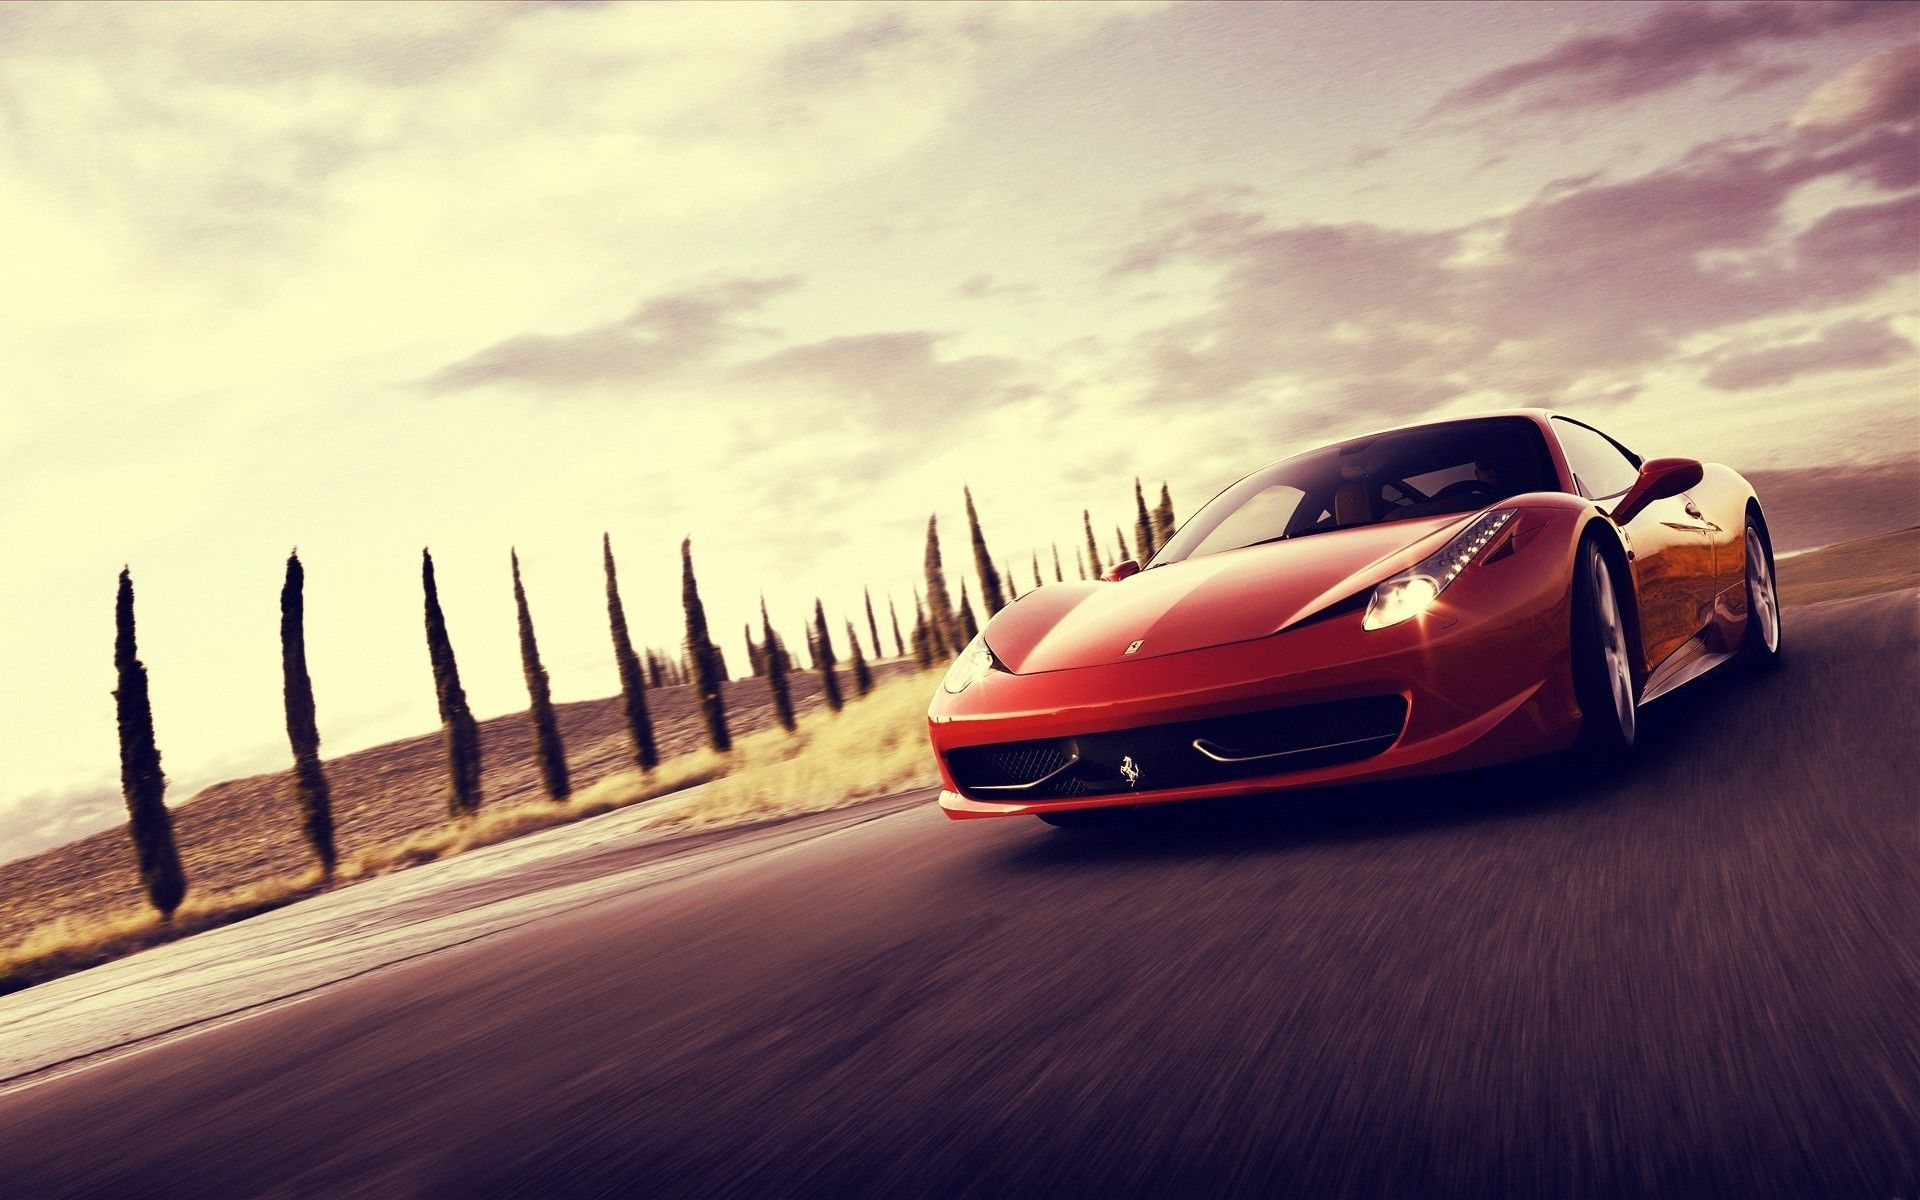 Red Car Wallpaper Ferrari italy